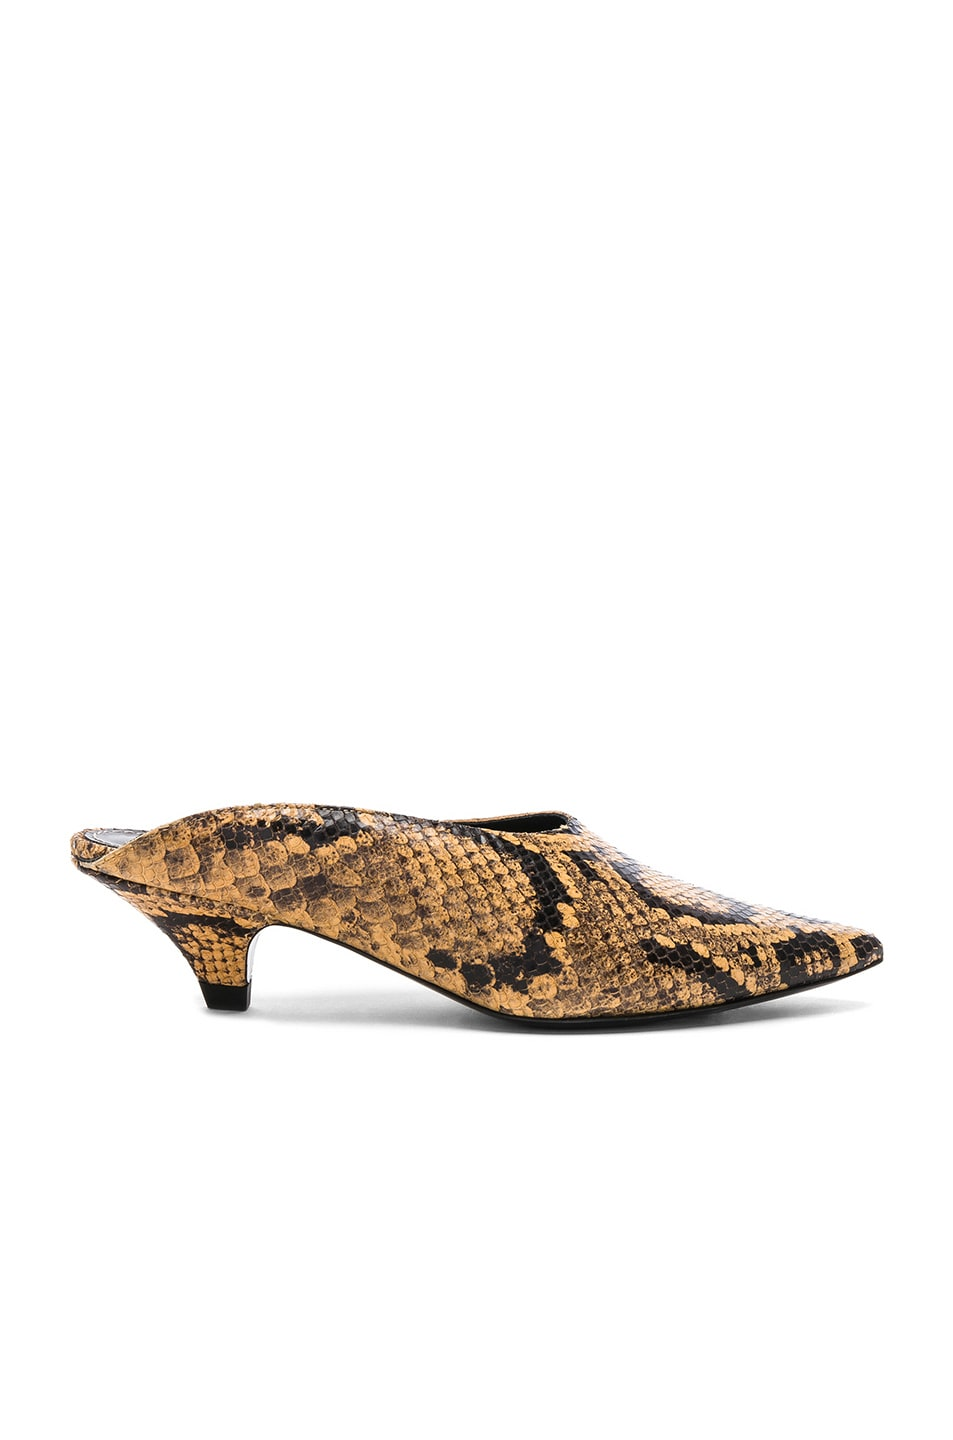 Image 1 of Proenza Schouler Python Print Kitten Heel Mules in Curry